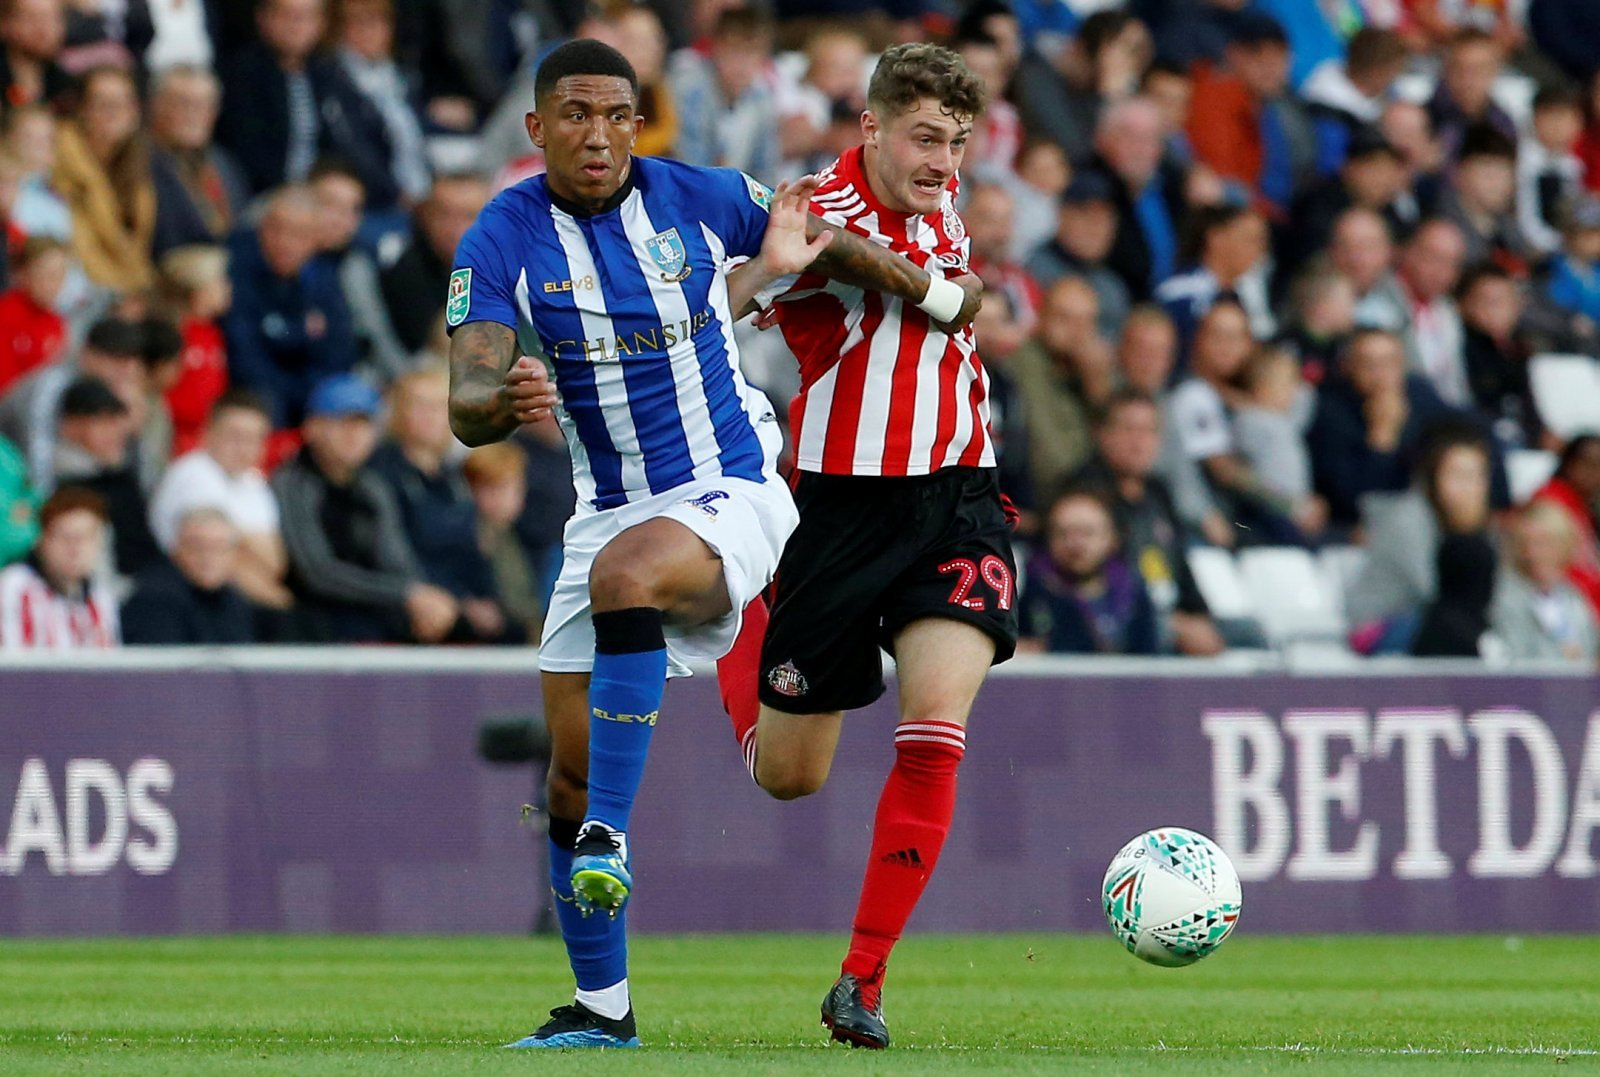 Sunderland: International call-up ruins youngster's season